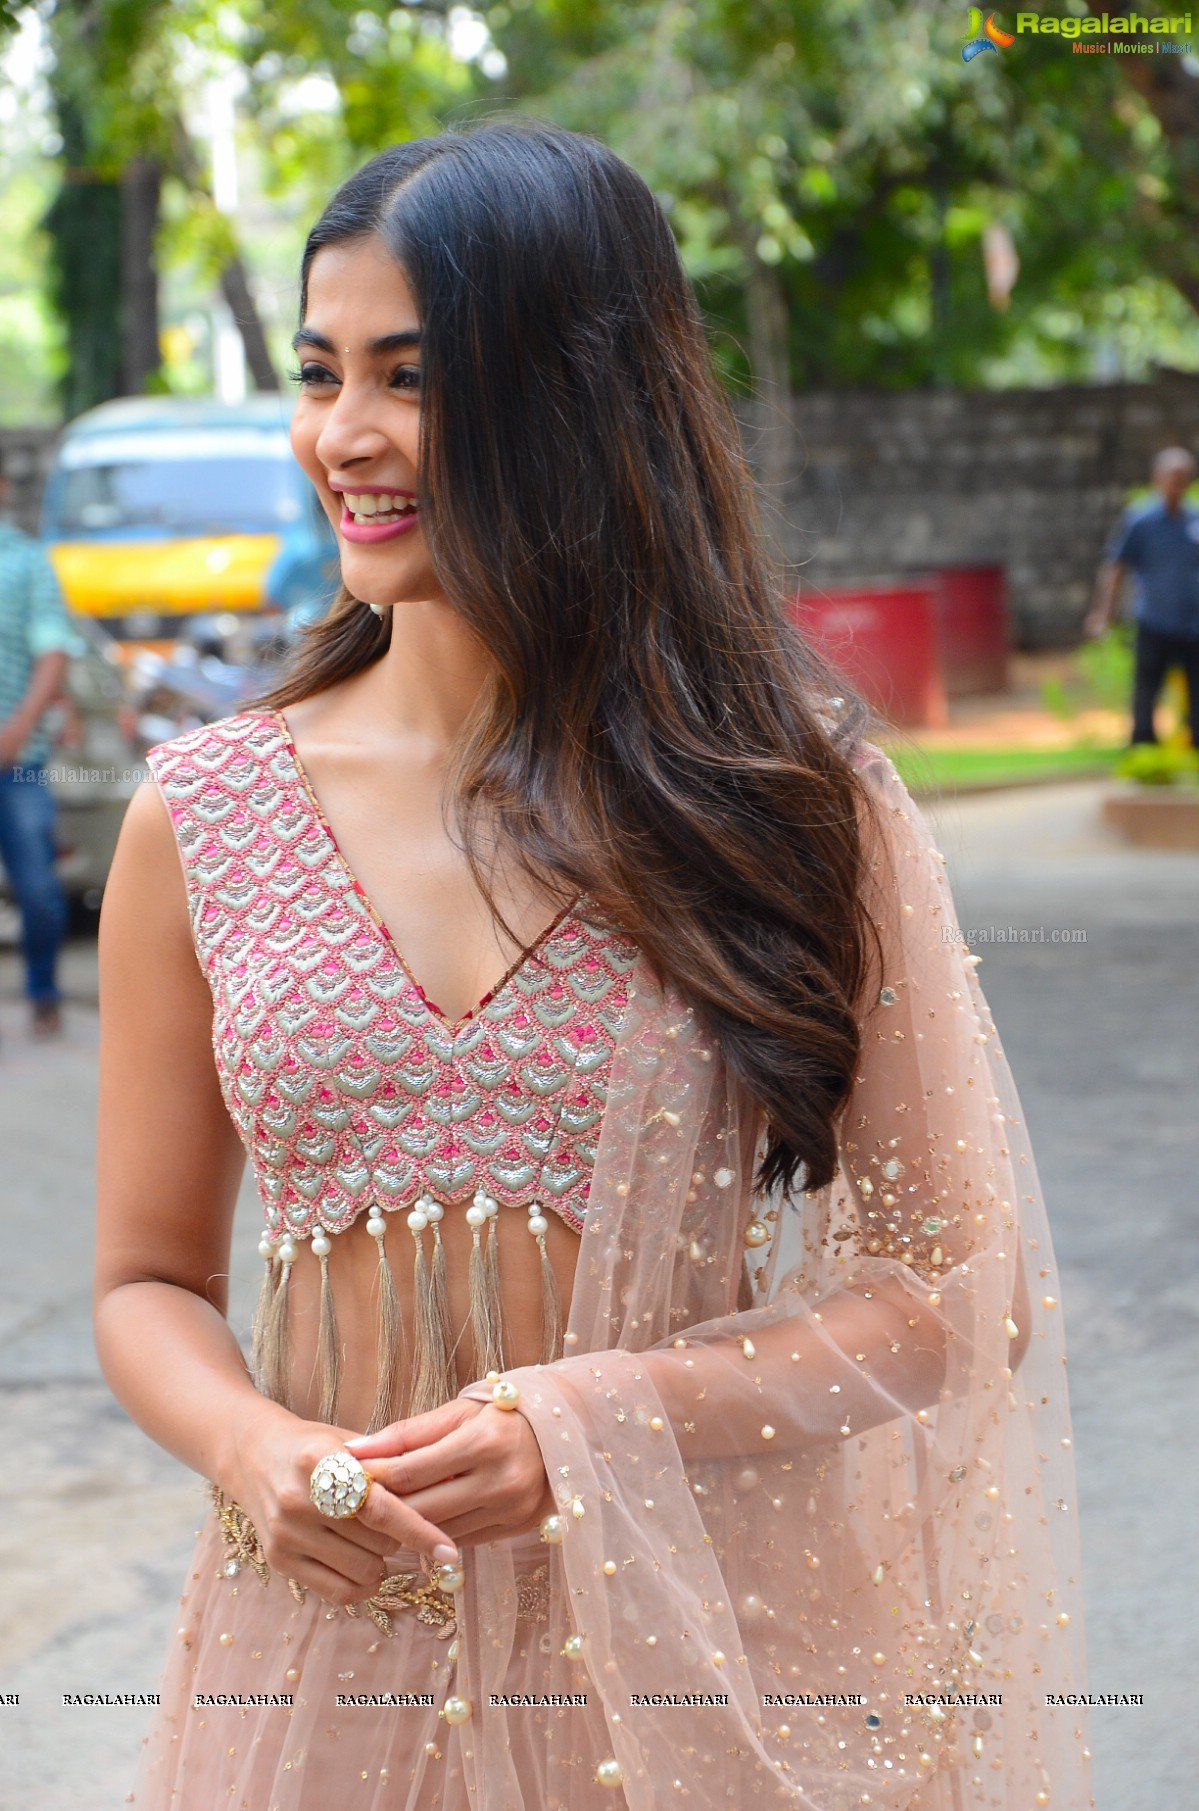 pooja hegde at sakshyam movie poster launch image 35 | telugu